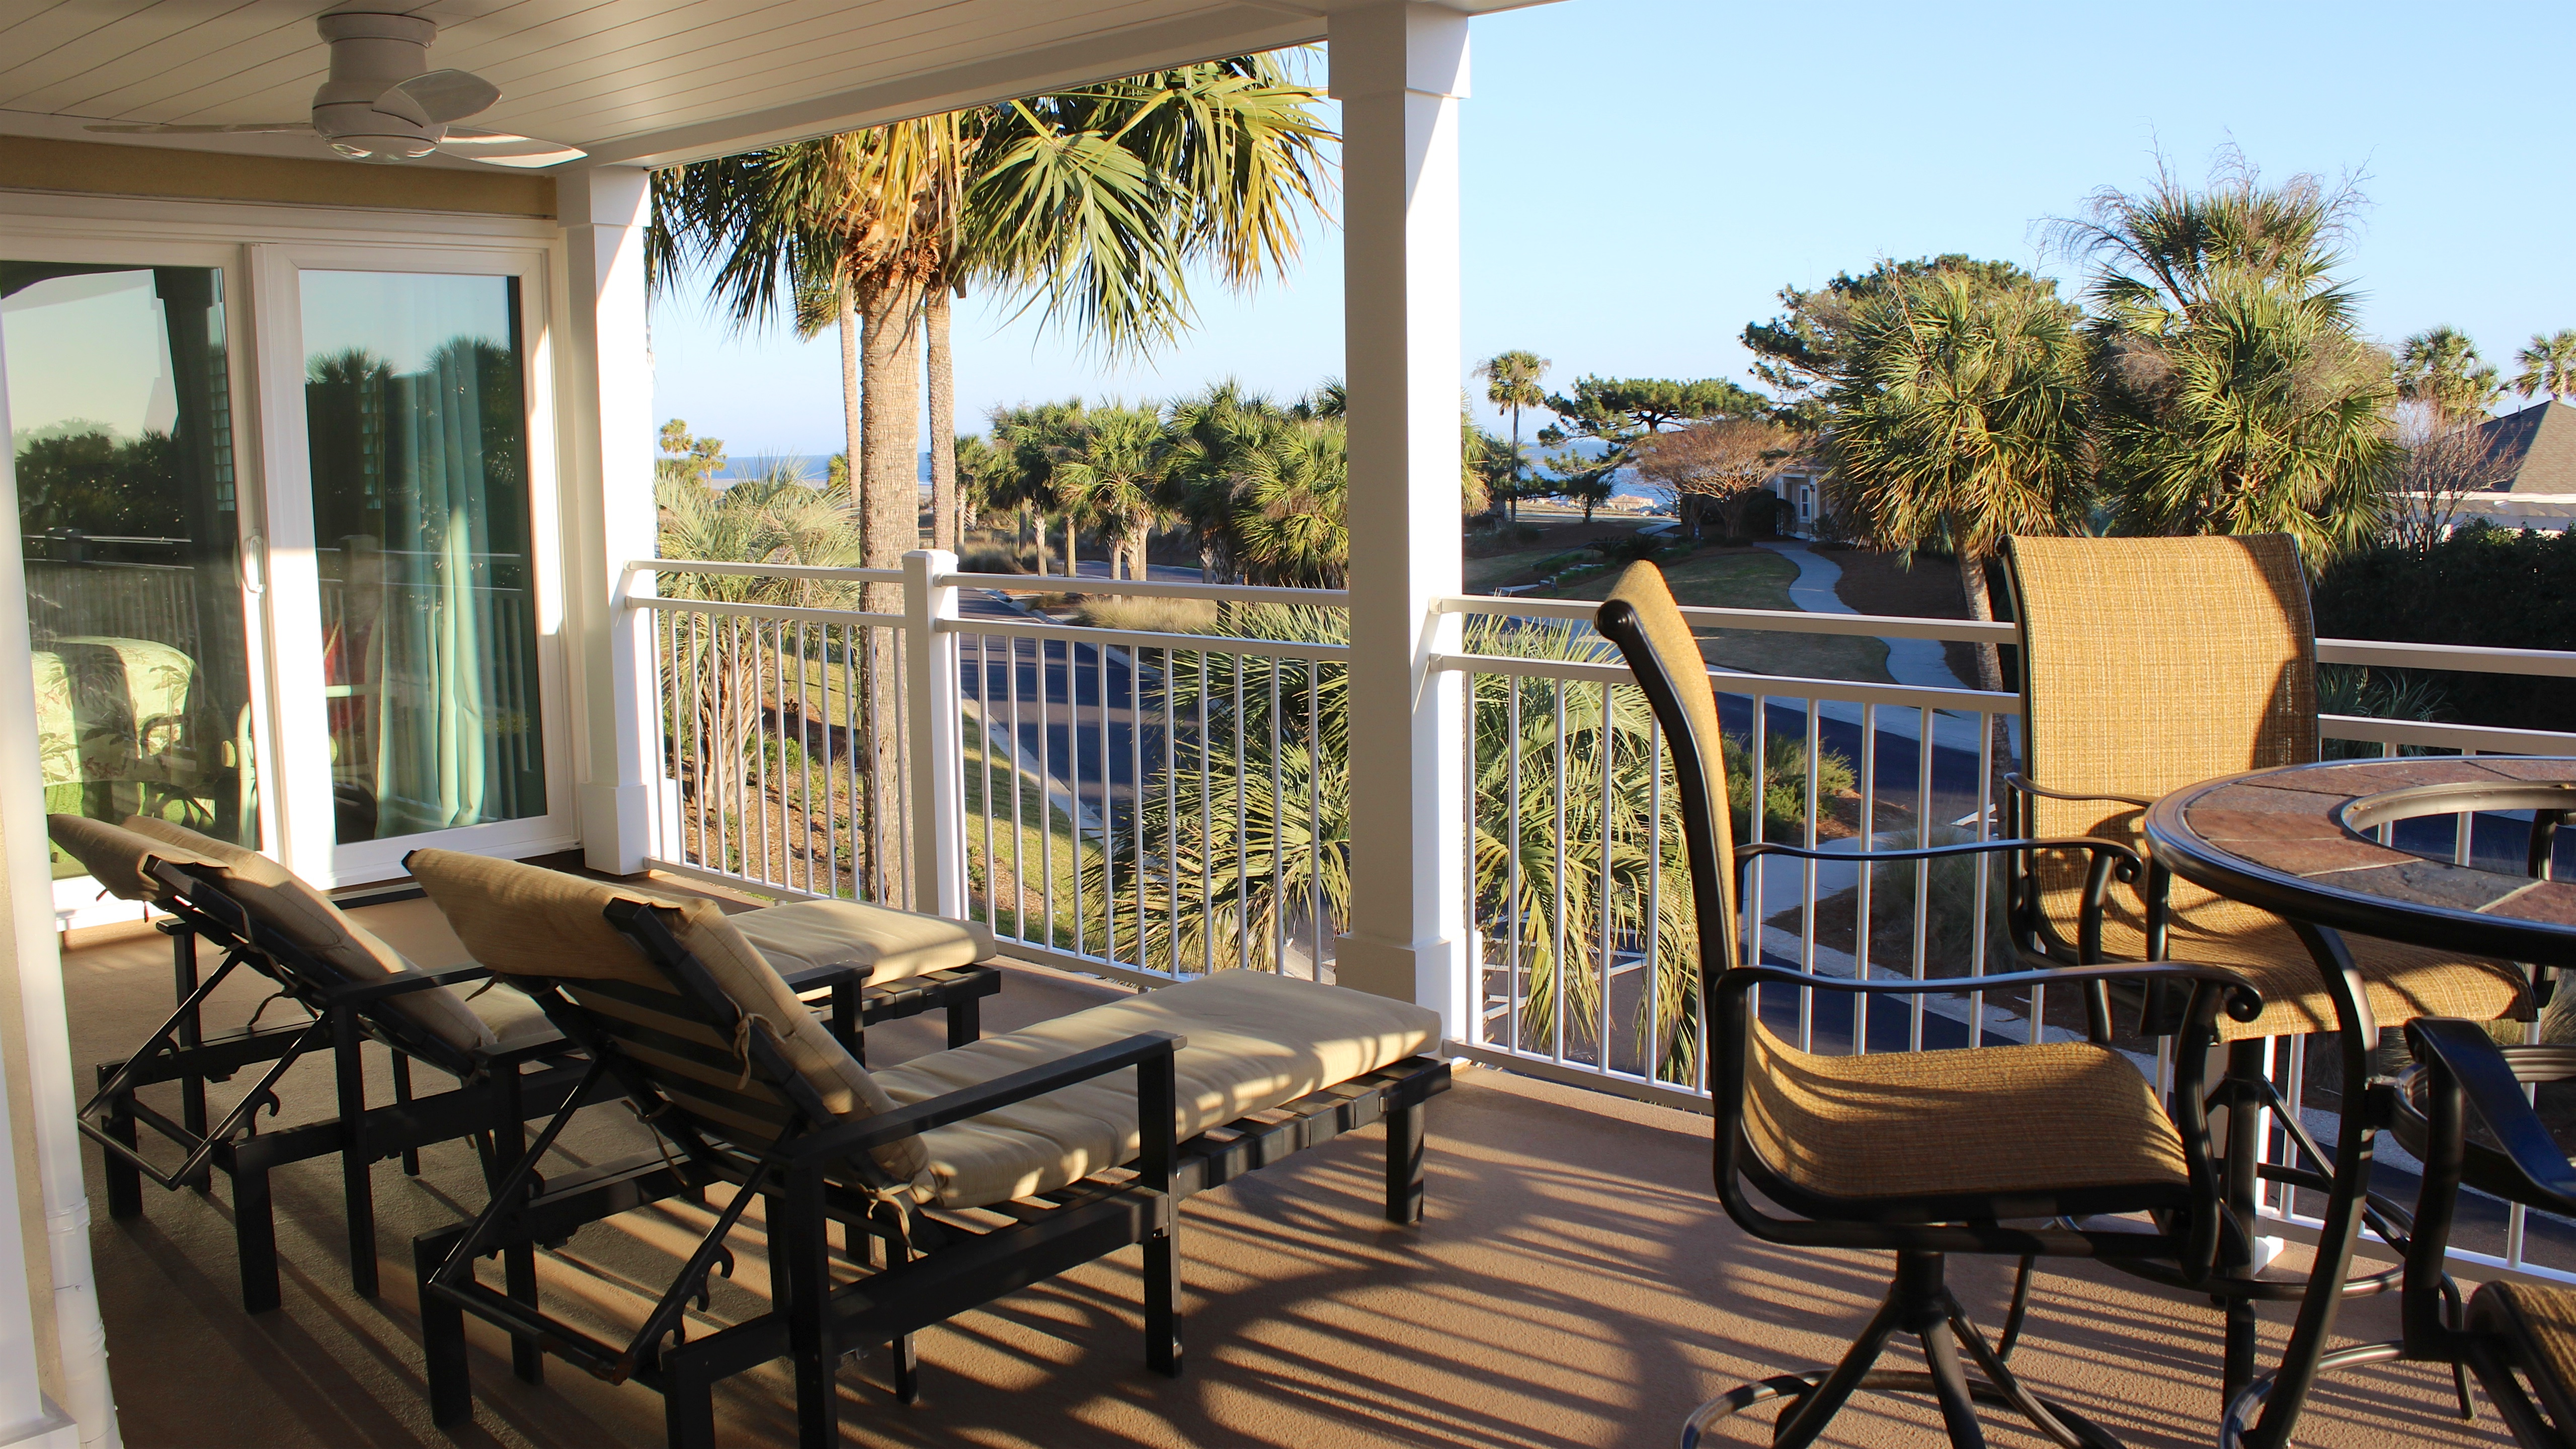 The beach, Beach Club pools, dining, golf, sunsets, dolphins, and a lovely home.... 2935 has it all!